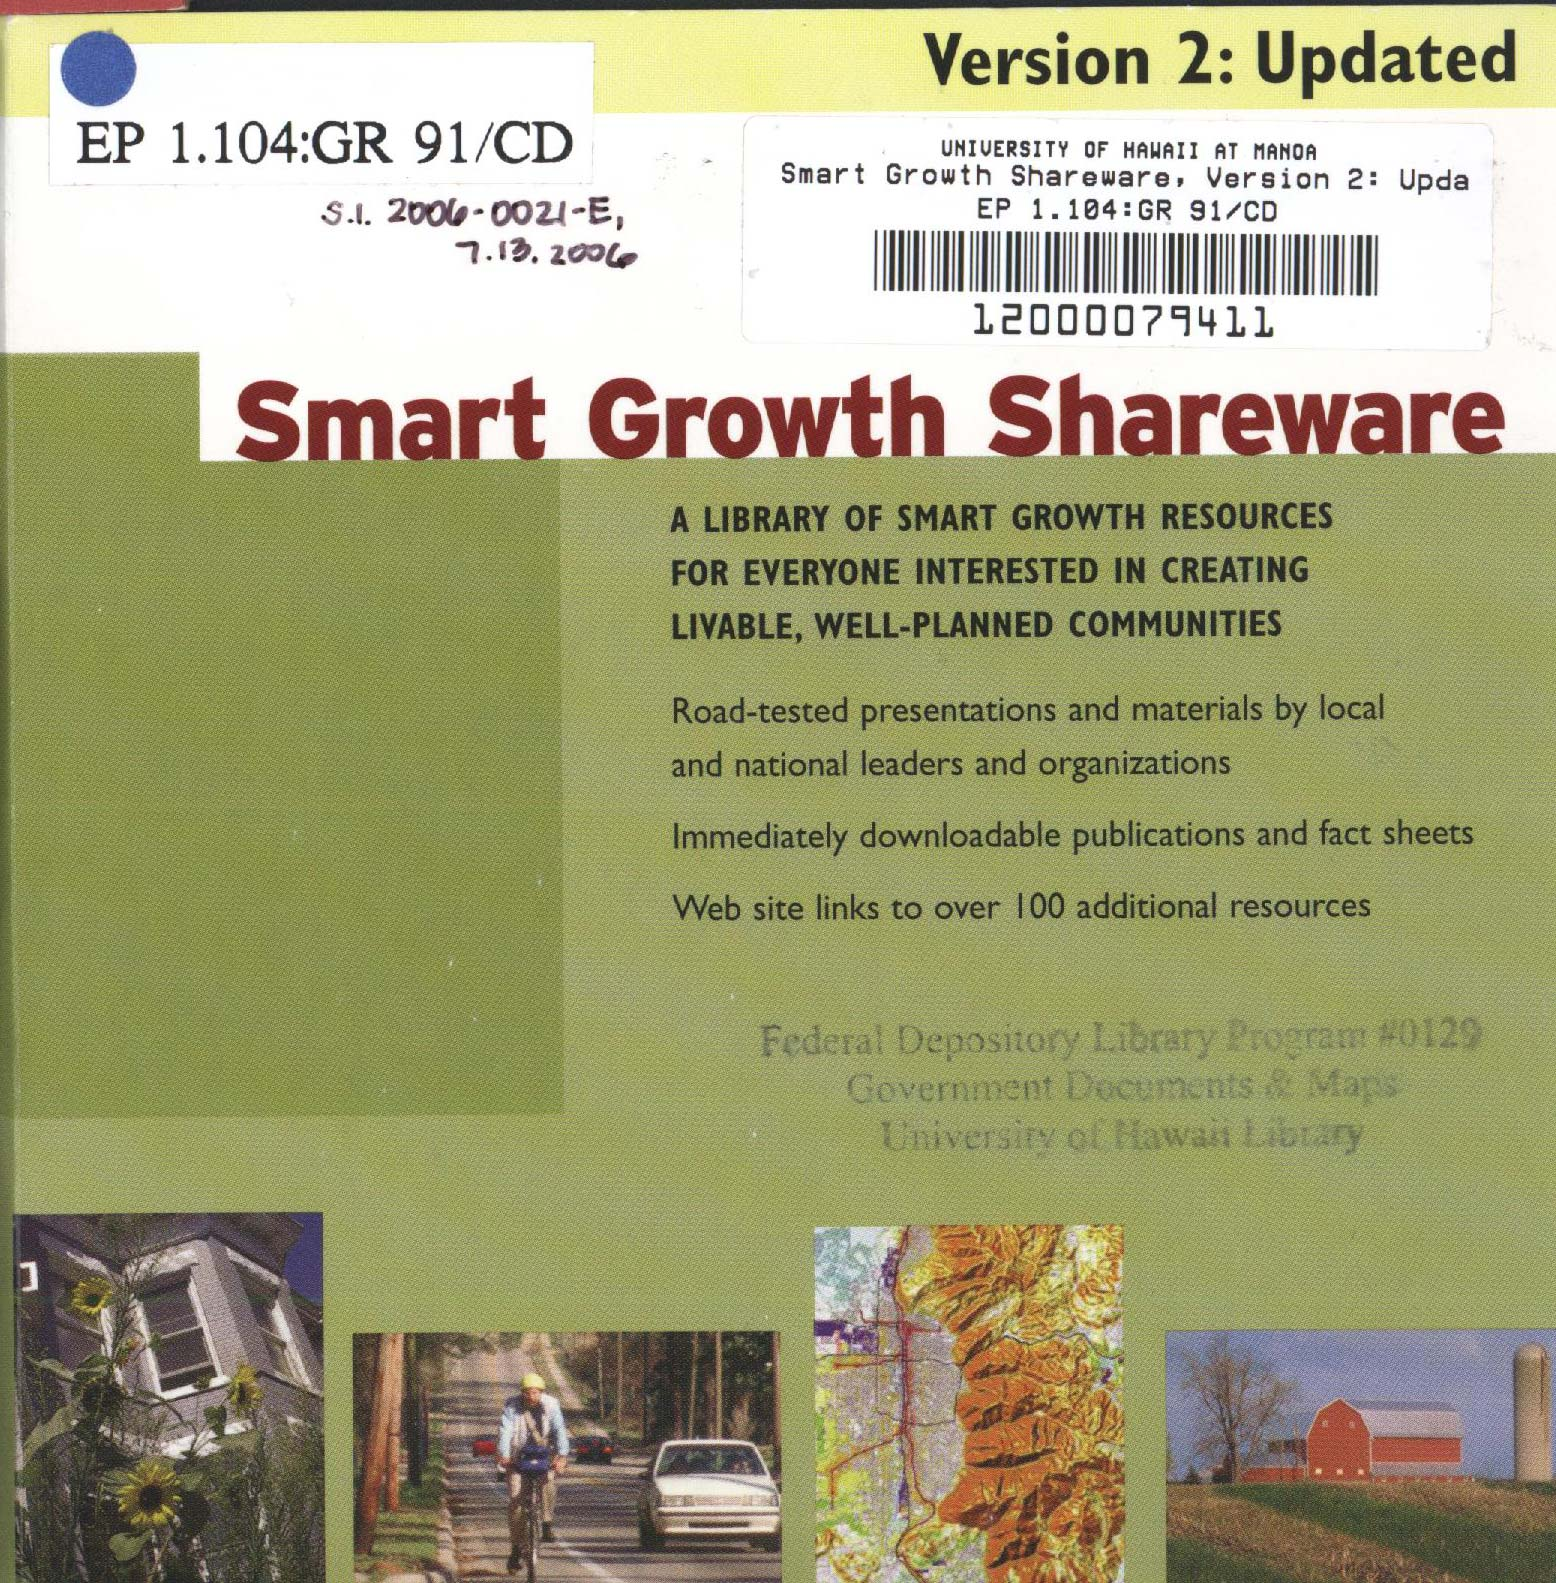 Photo of CD-ROM cover